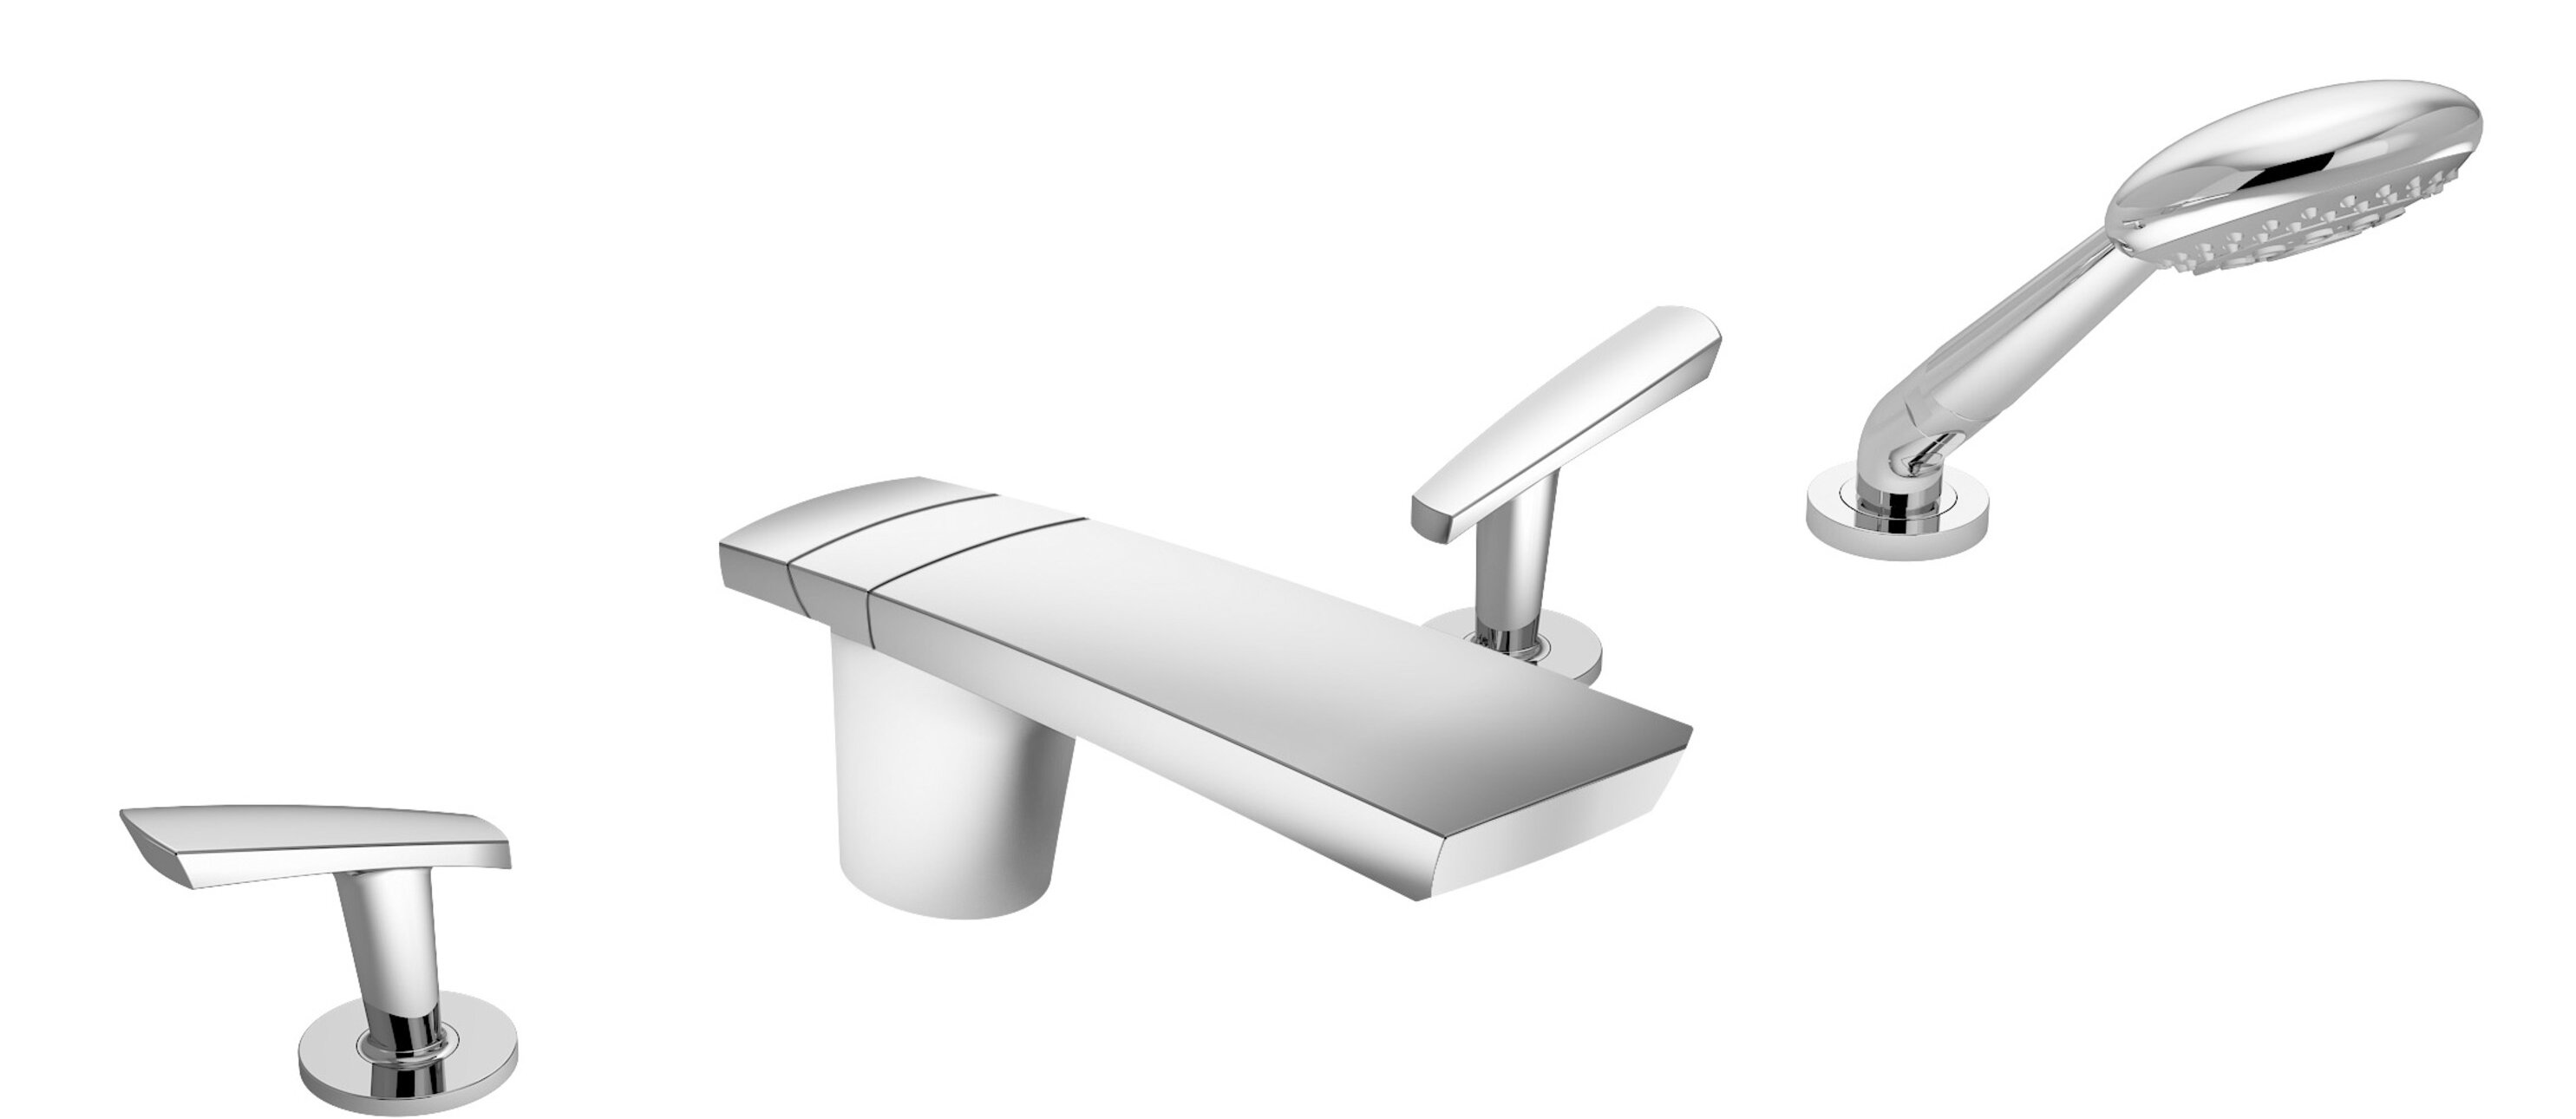 Symmons Naru Double Handle Deck Mounted Roman Tub Faucet With Diverter And Handshower Wayfair